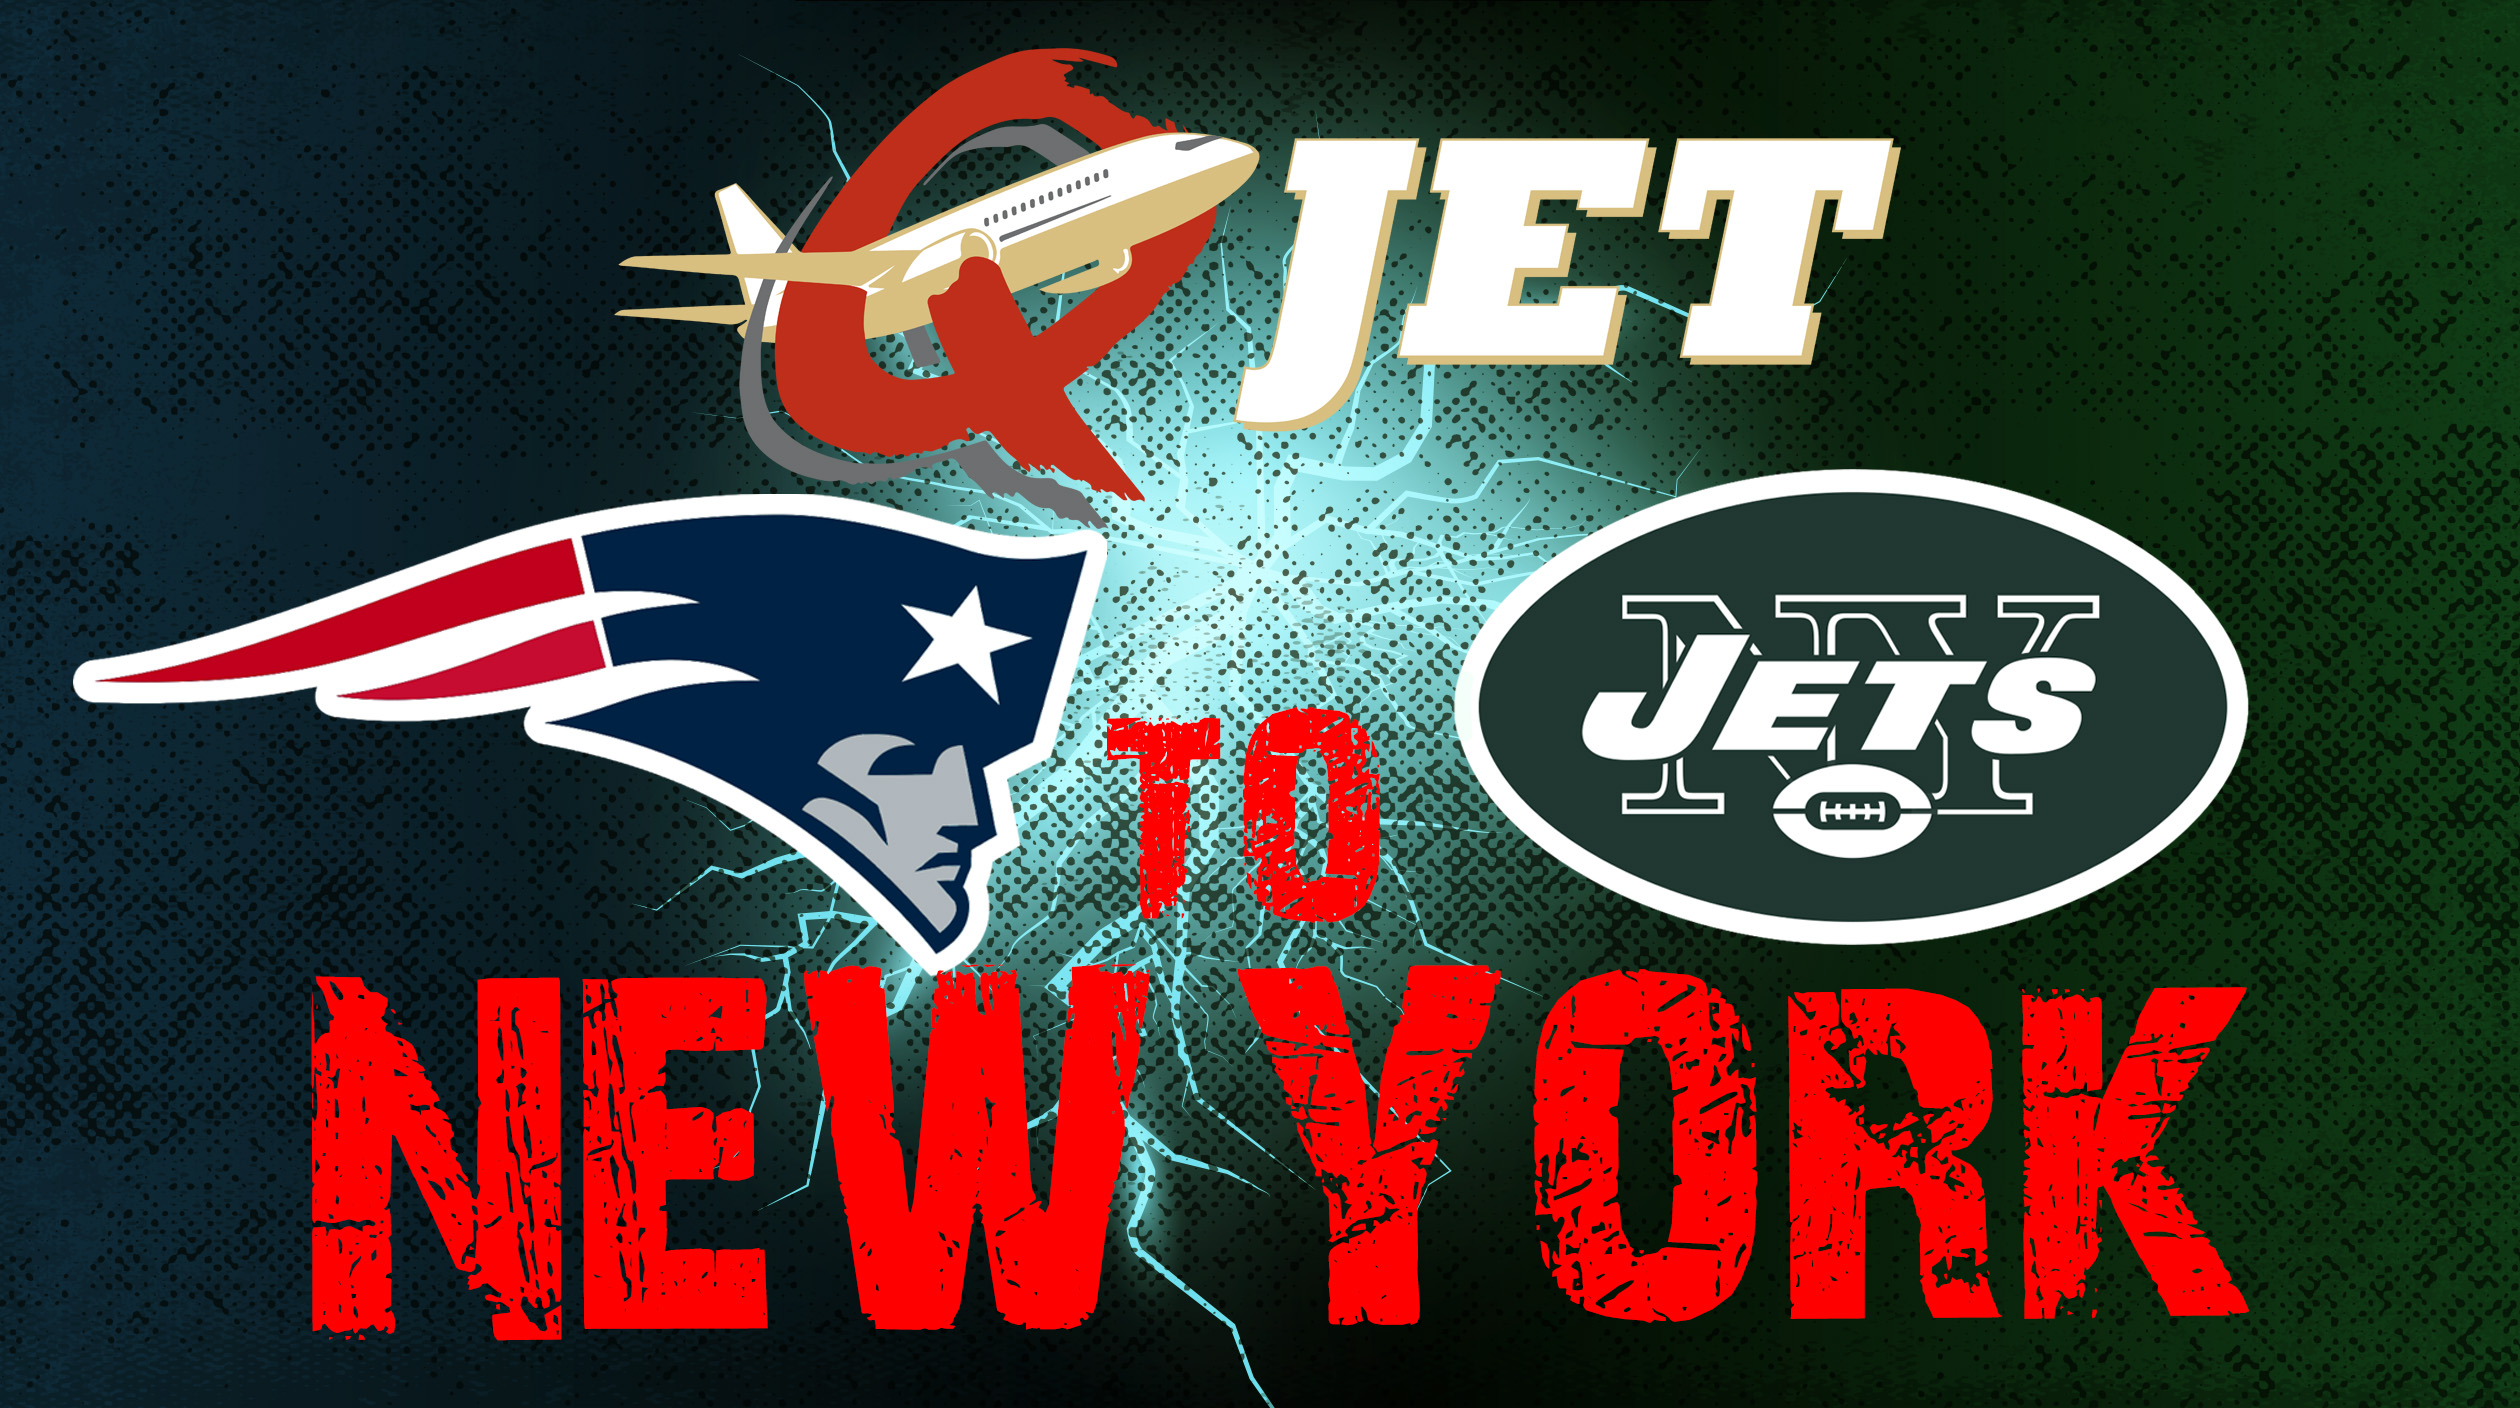 Q-Jet to New York – Patriots at NY Jets! With gametimetours.ca